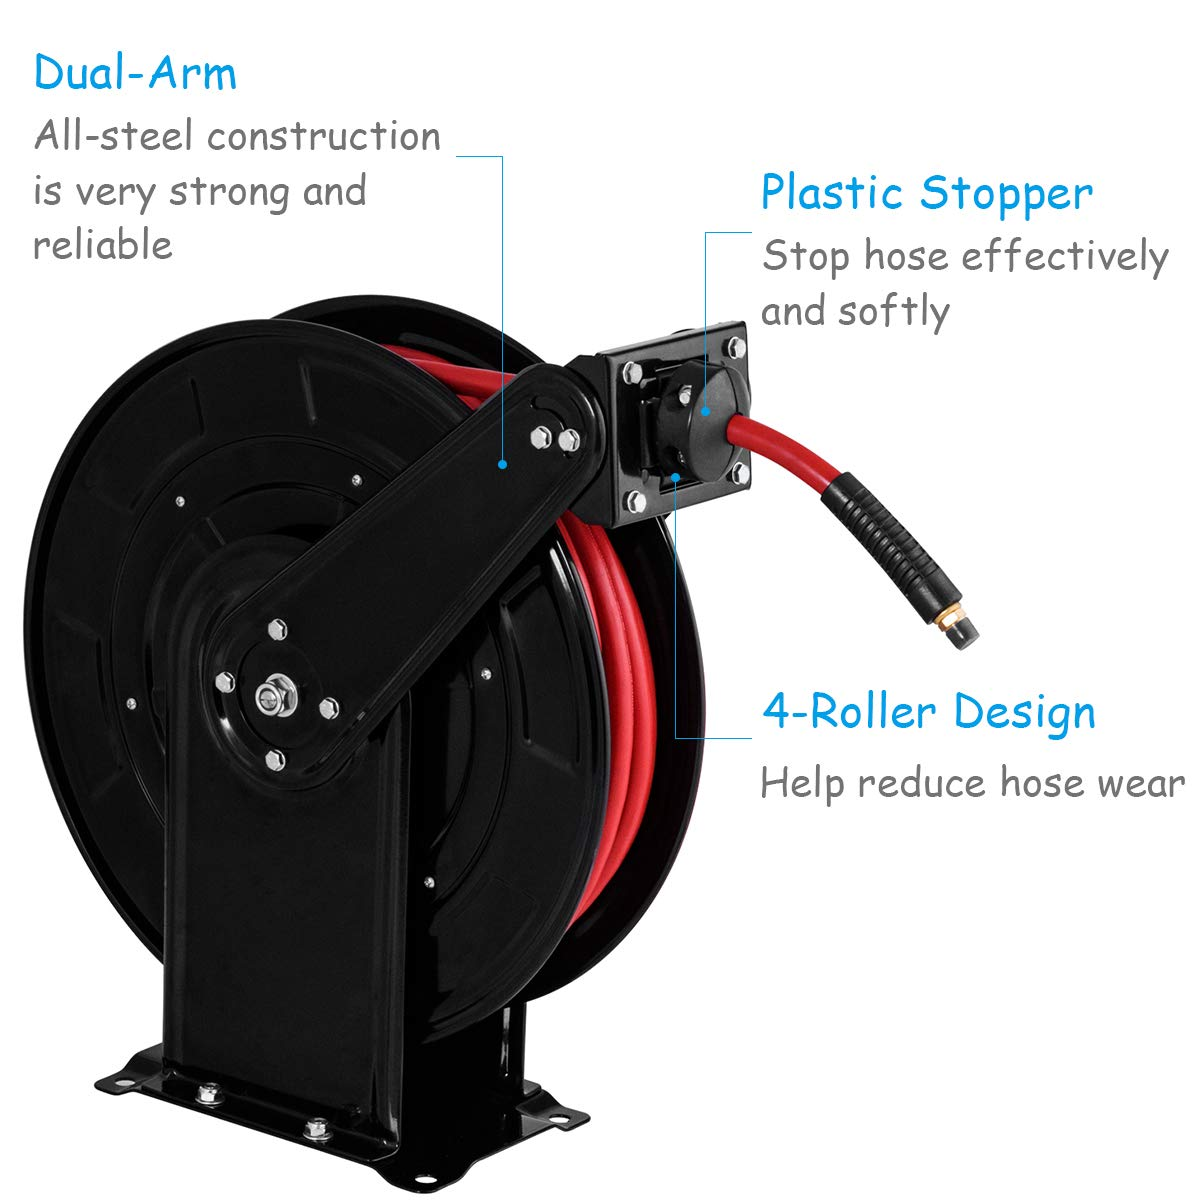 300 PSI Goplus 65 Air Hose Reel with Retractable 3//8 Rubber Hose Auto Rewind Commercial Grade Heavy Duty Steel and High Pressure Max